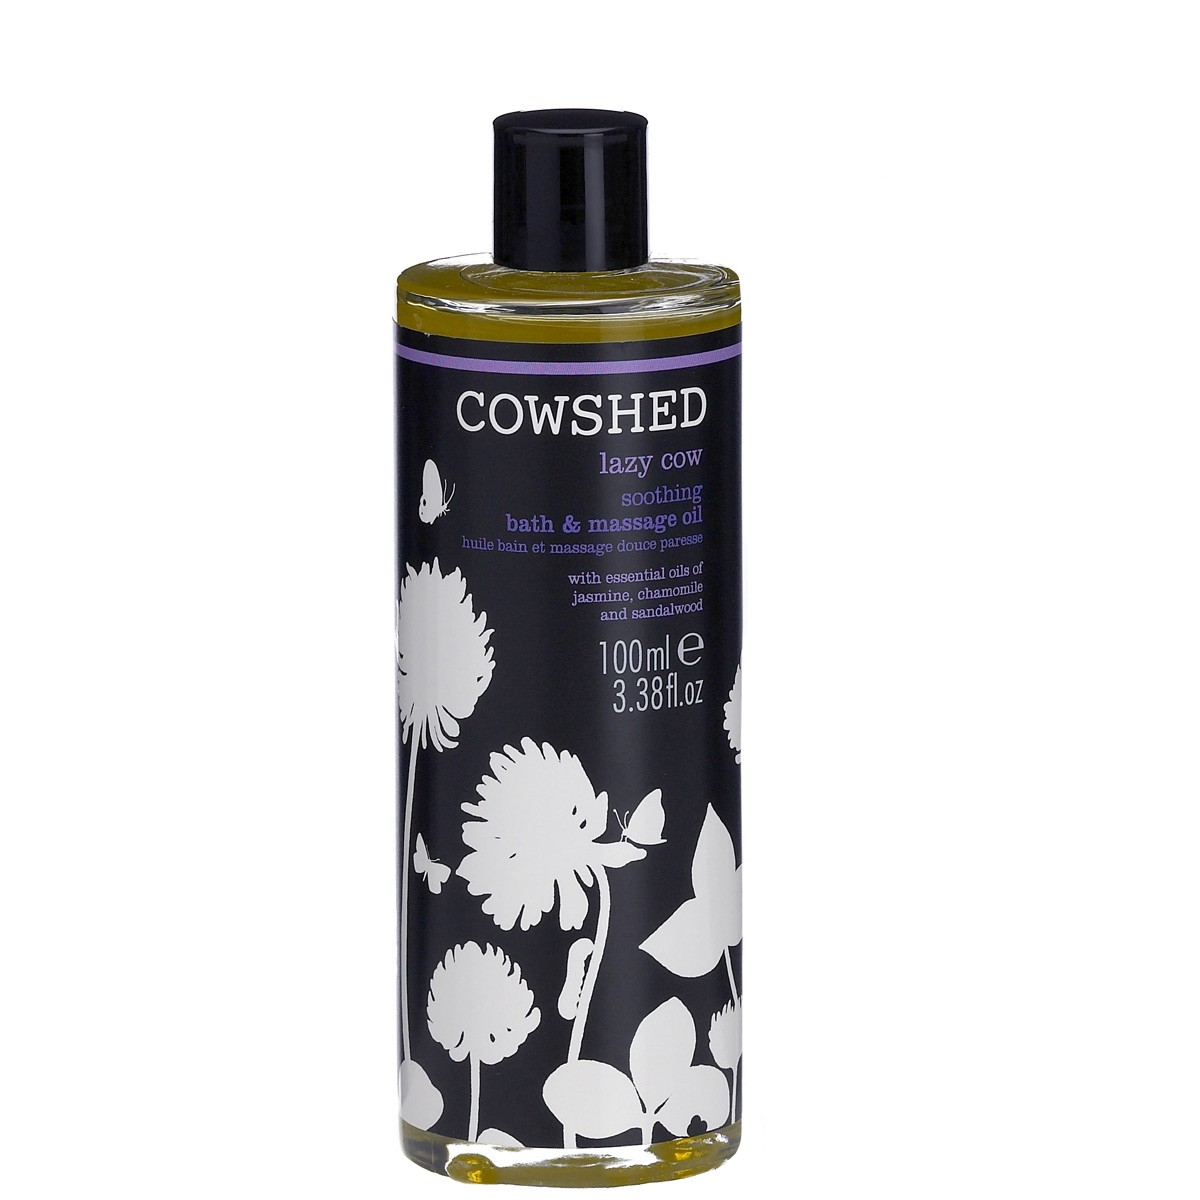 Cowshed Lazy Cow Soothing Bath & Massage Oil